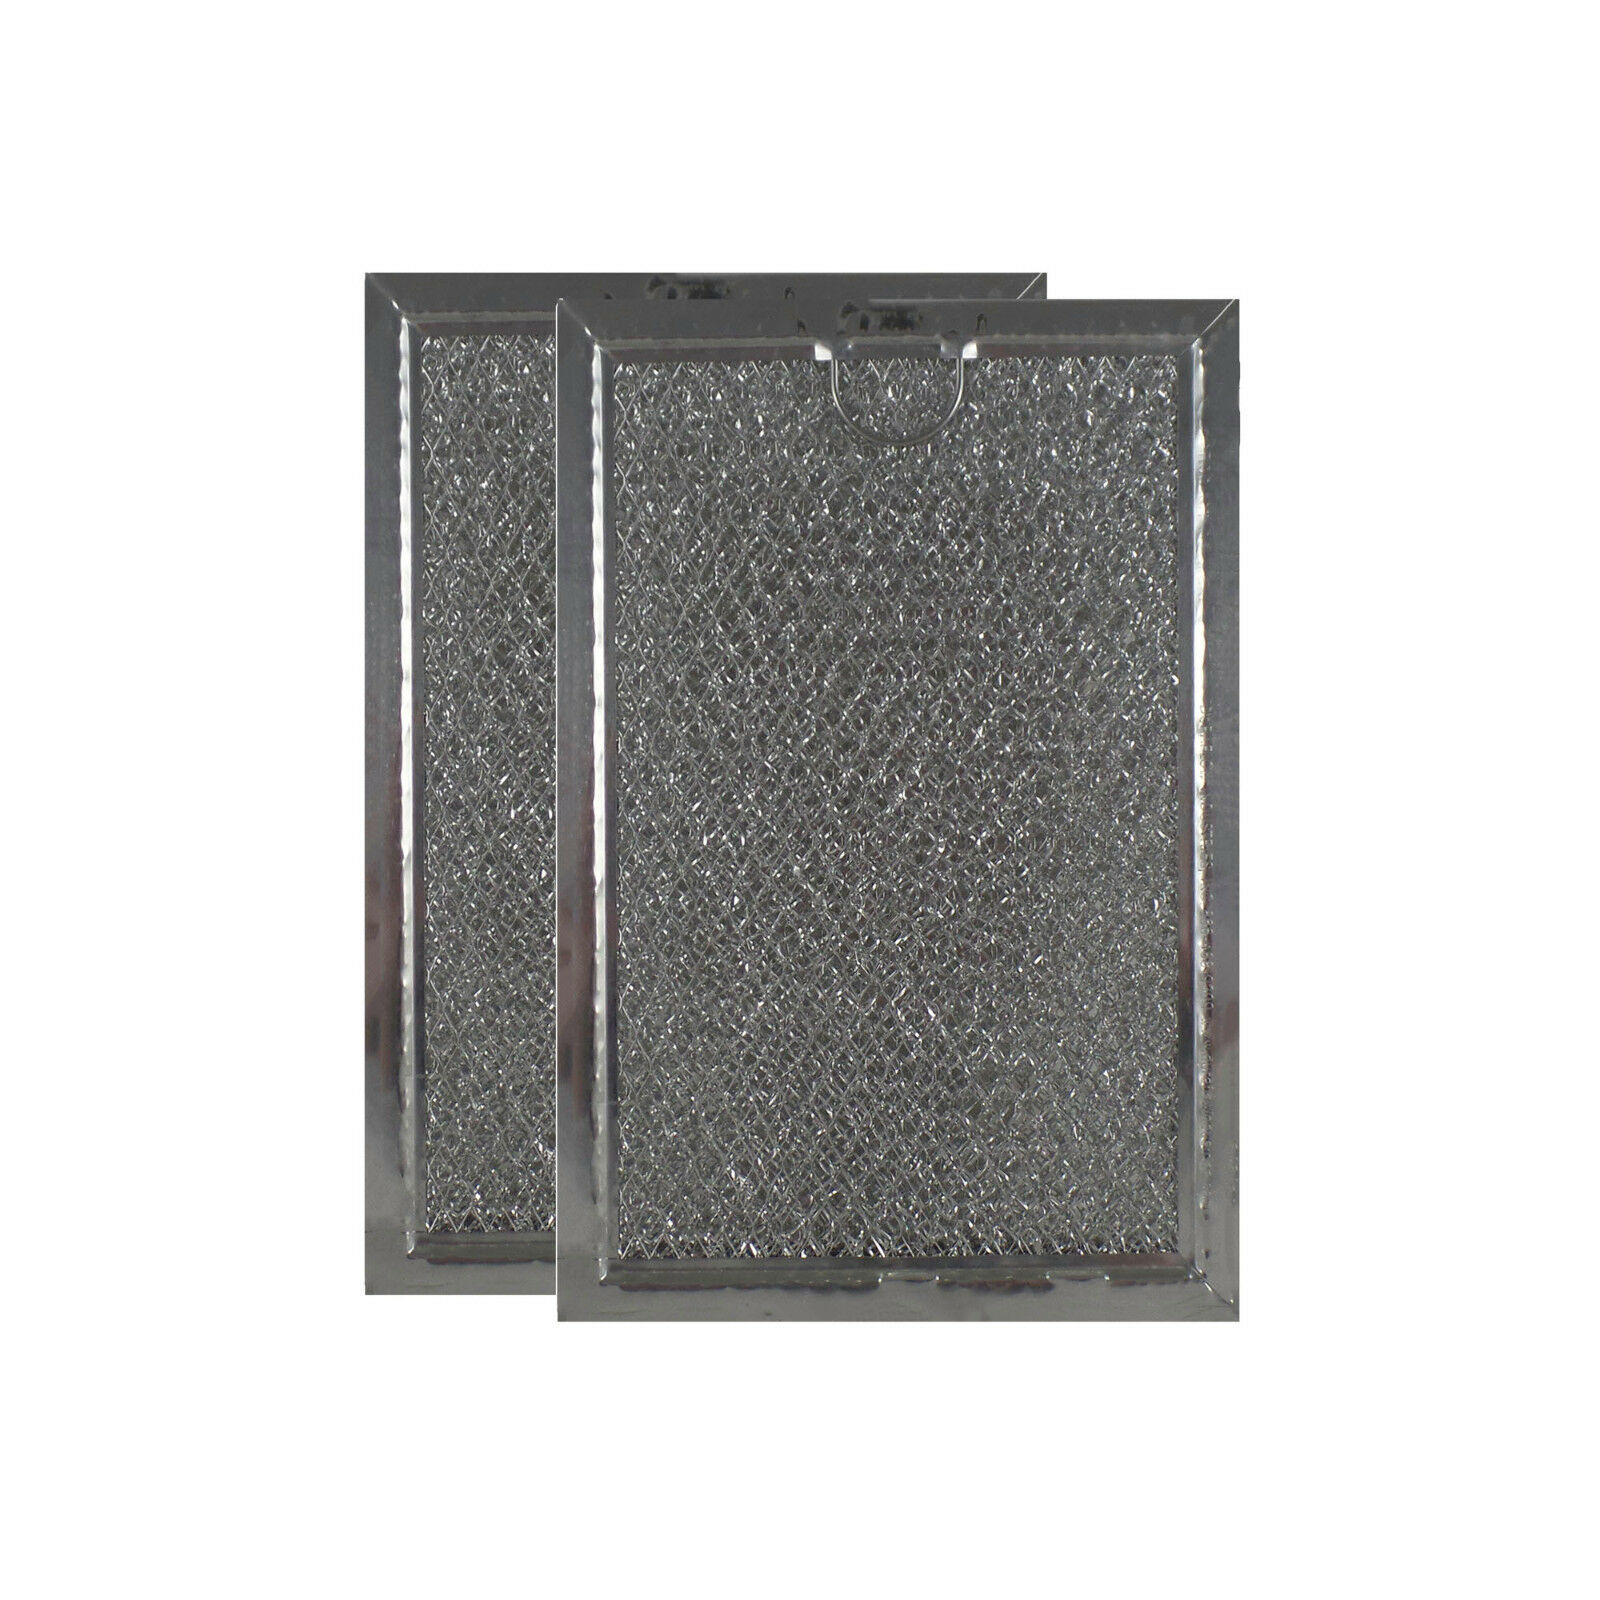 LG 1257016 Compatible Microwave Aluminum Mesh Grease Filter